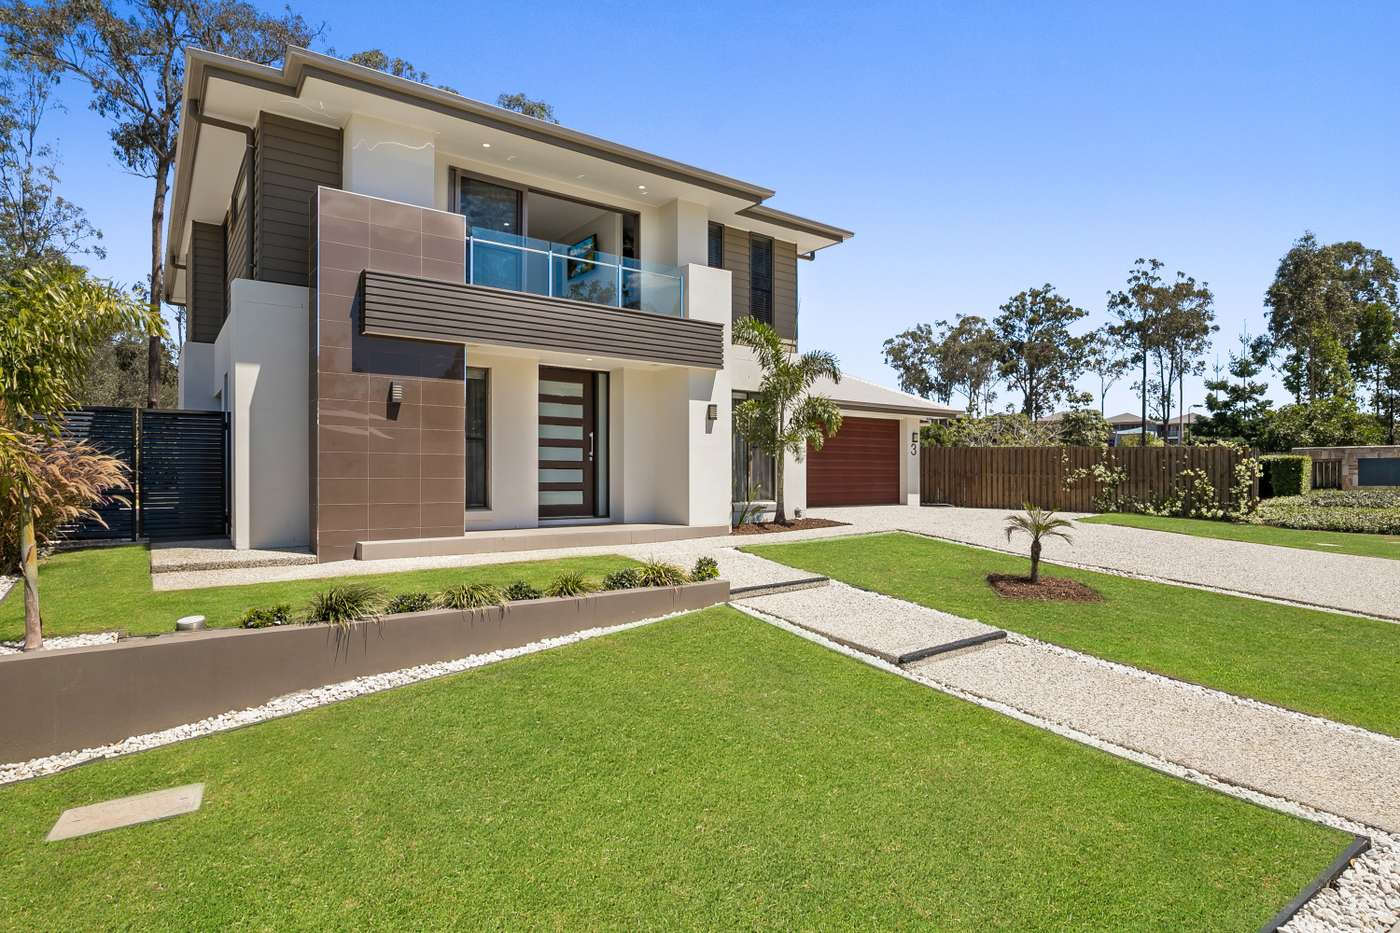 Main view of Homely house listing, 3 Monterey Circuit, Brookwater, QLD 4300